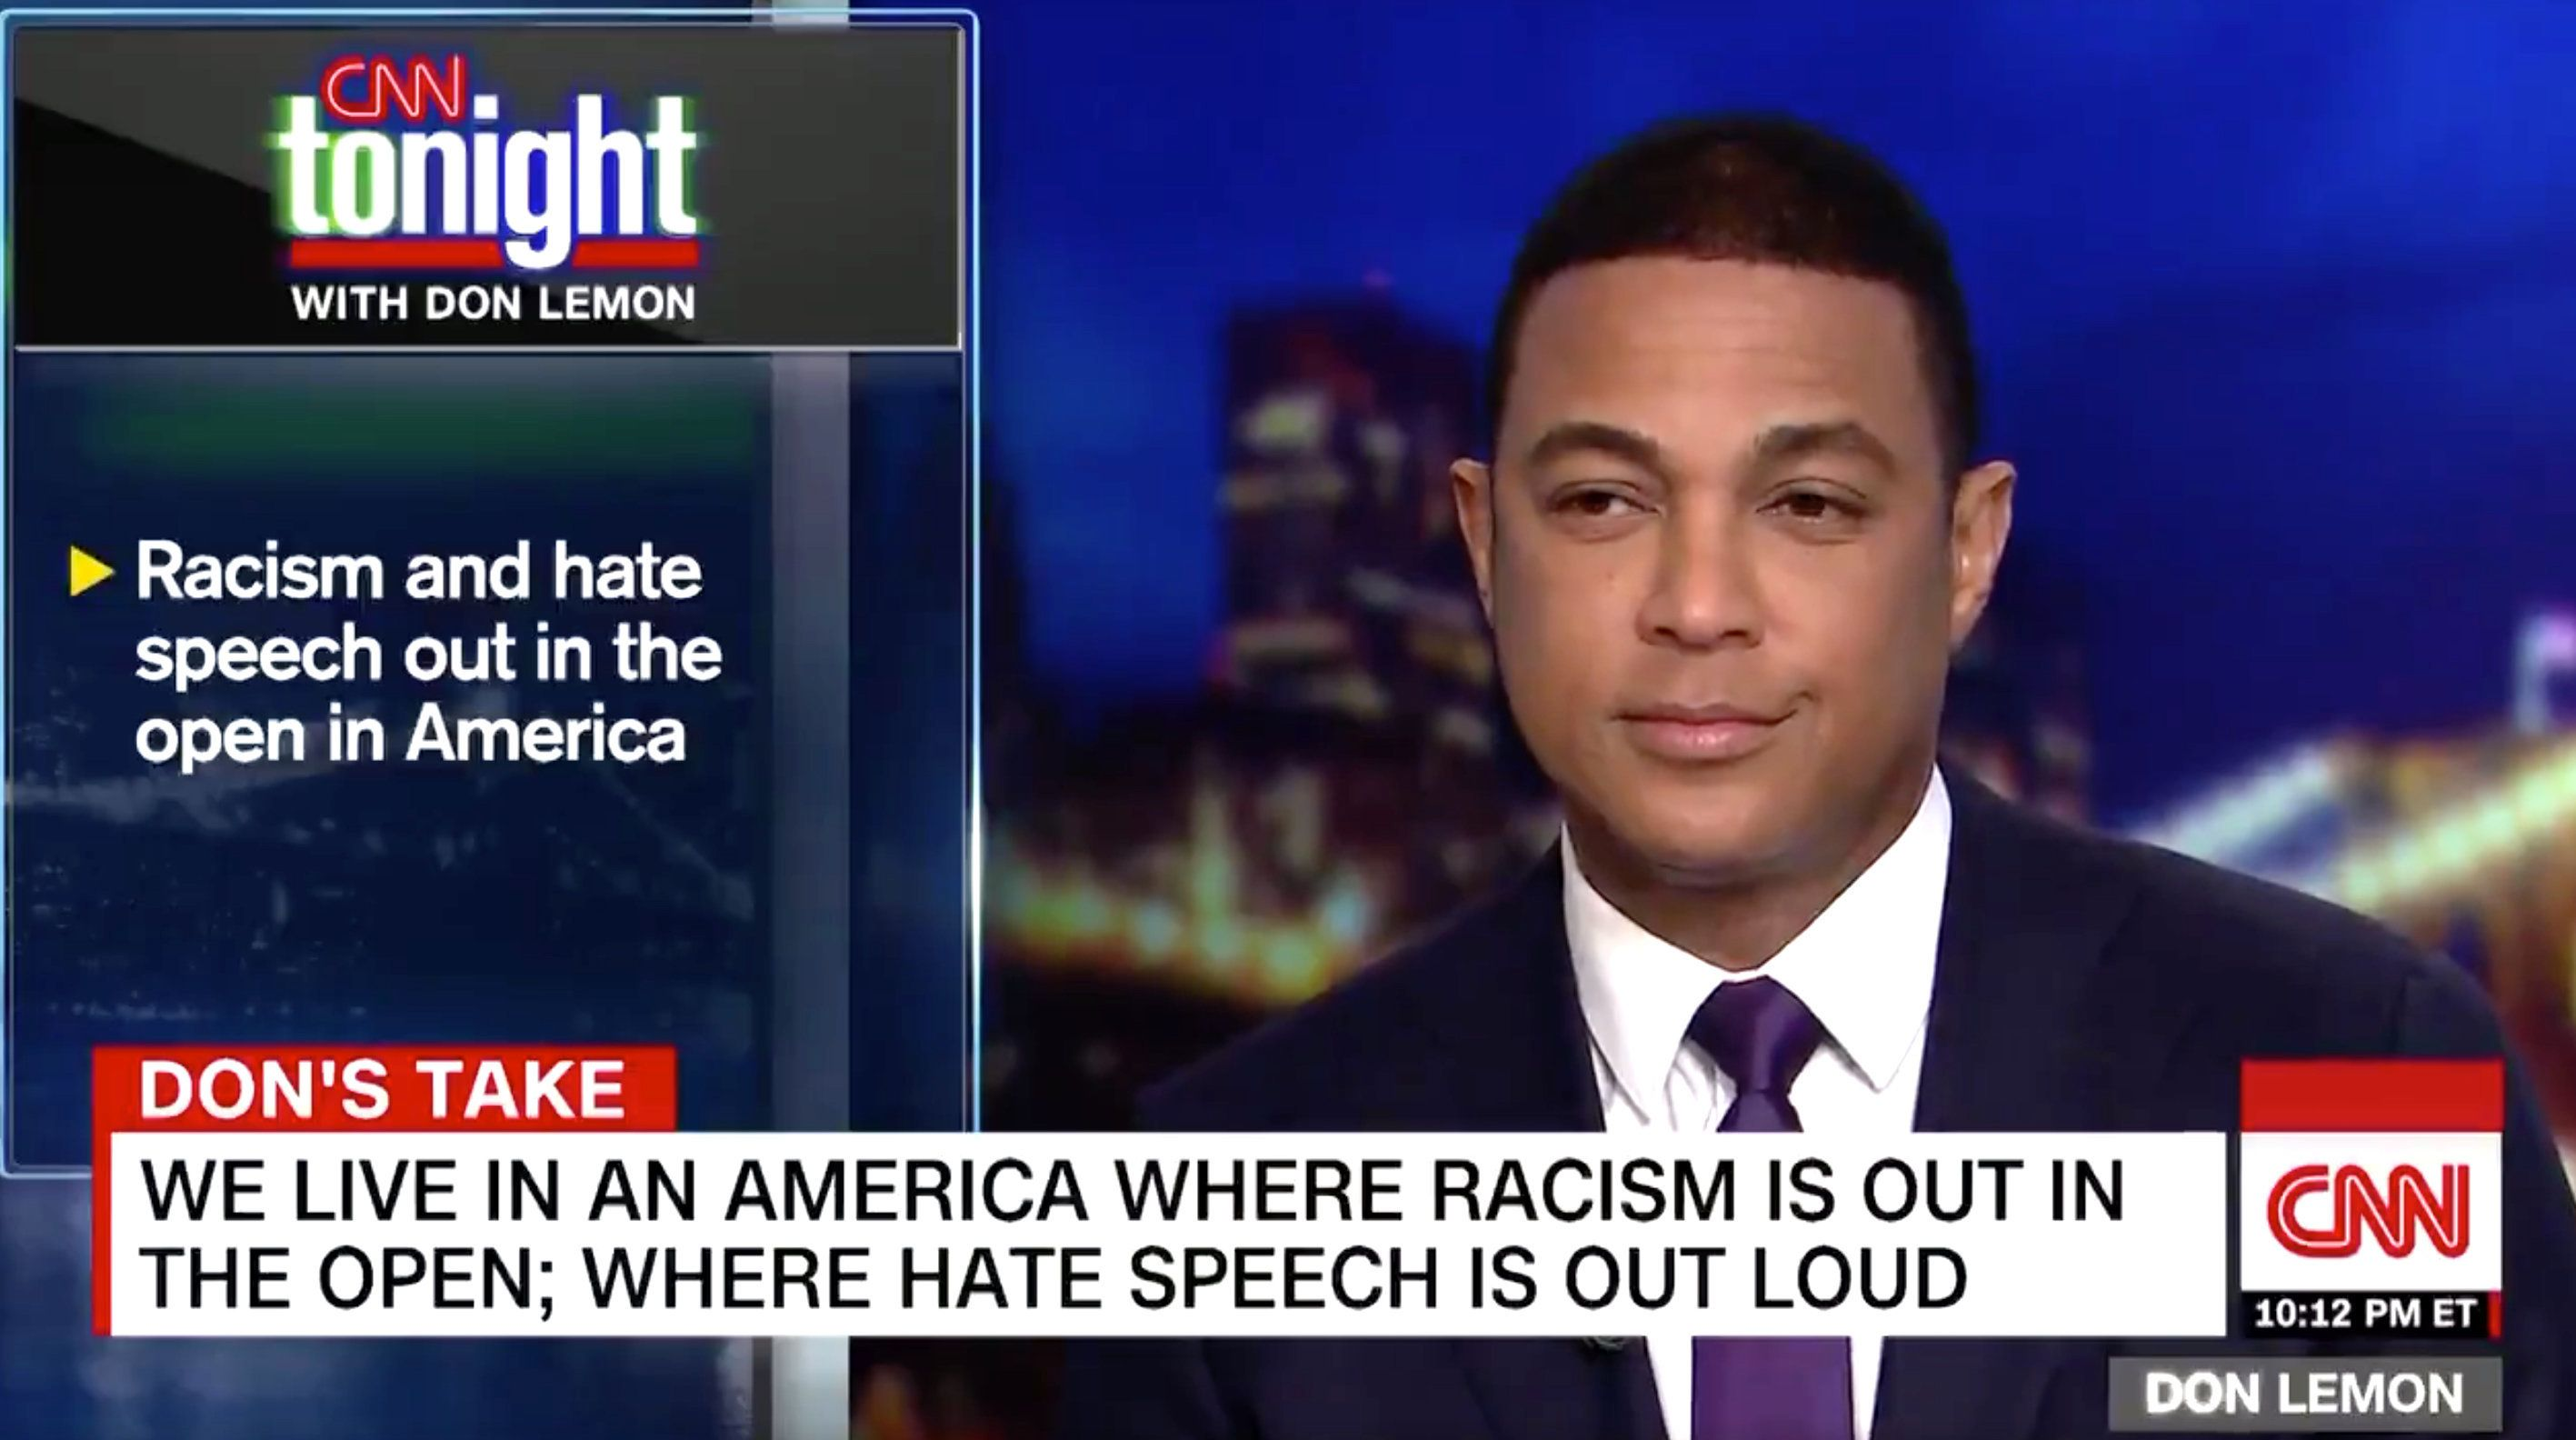 CNN's Don Lemon was at a loss for words after watching an interview in which embattled Virginia Gov. Ralph Northam said he hadn't been fully aware of his white privilege or why wearing blackface was problematic.